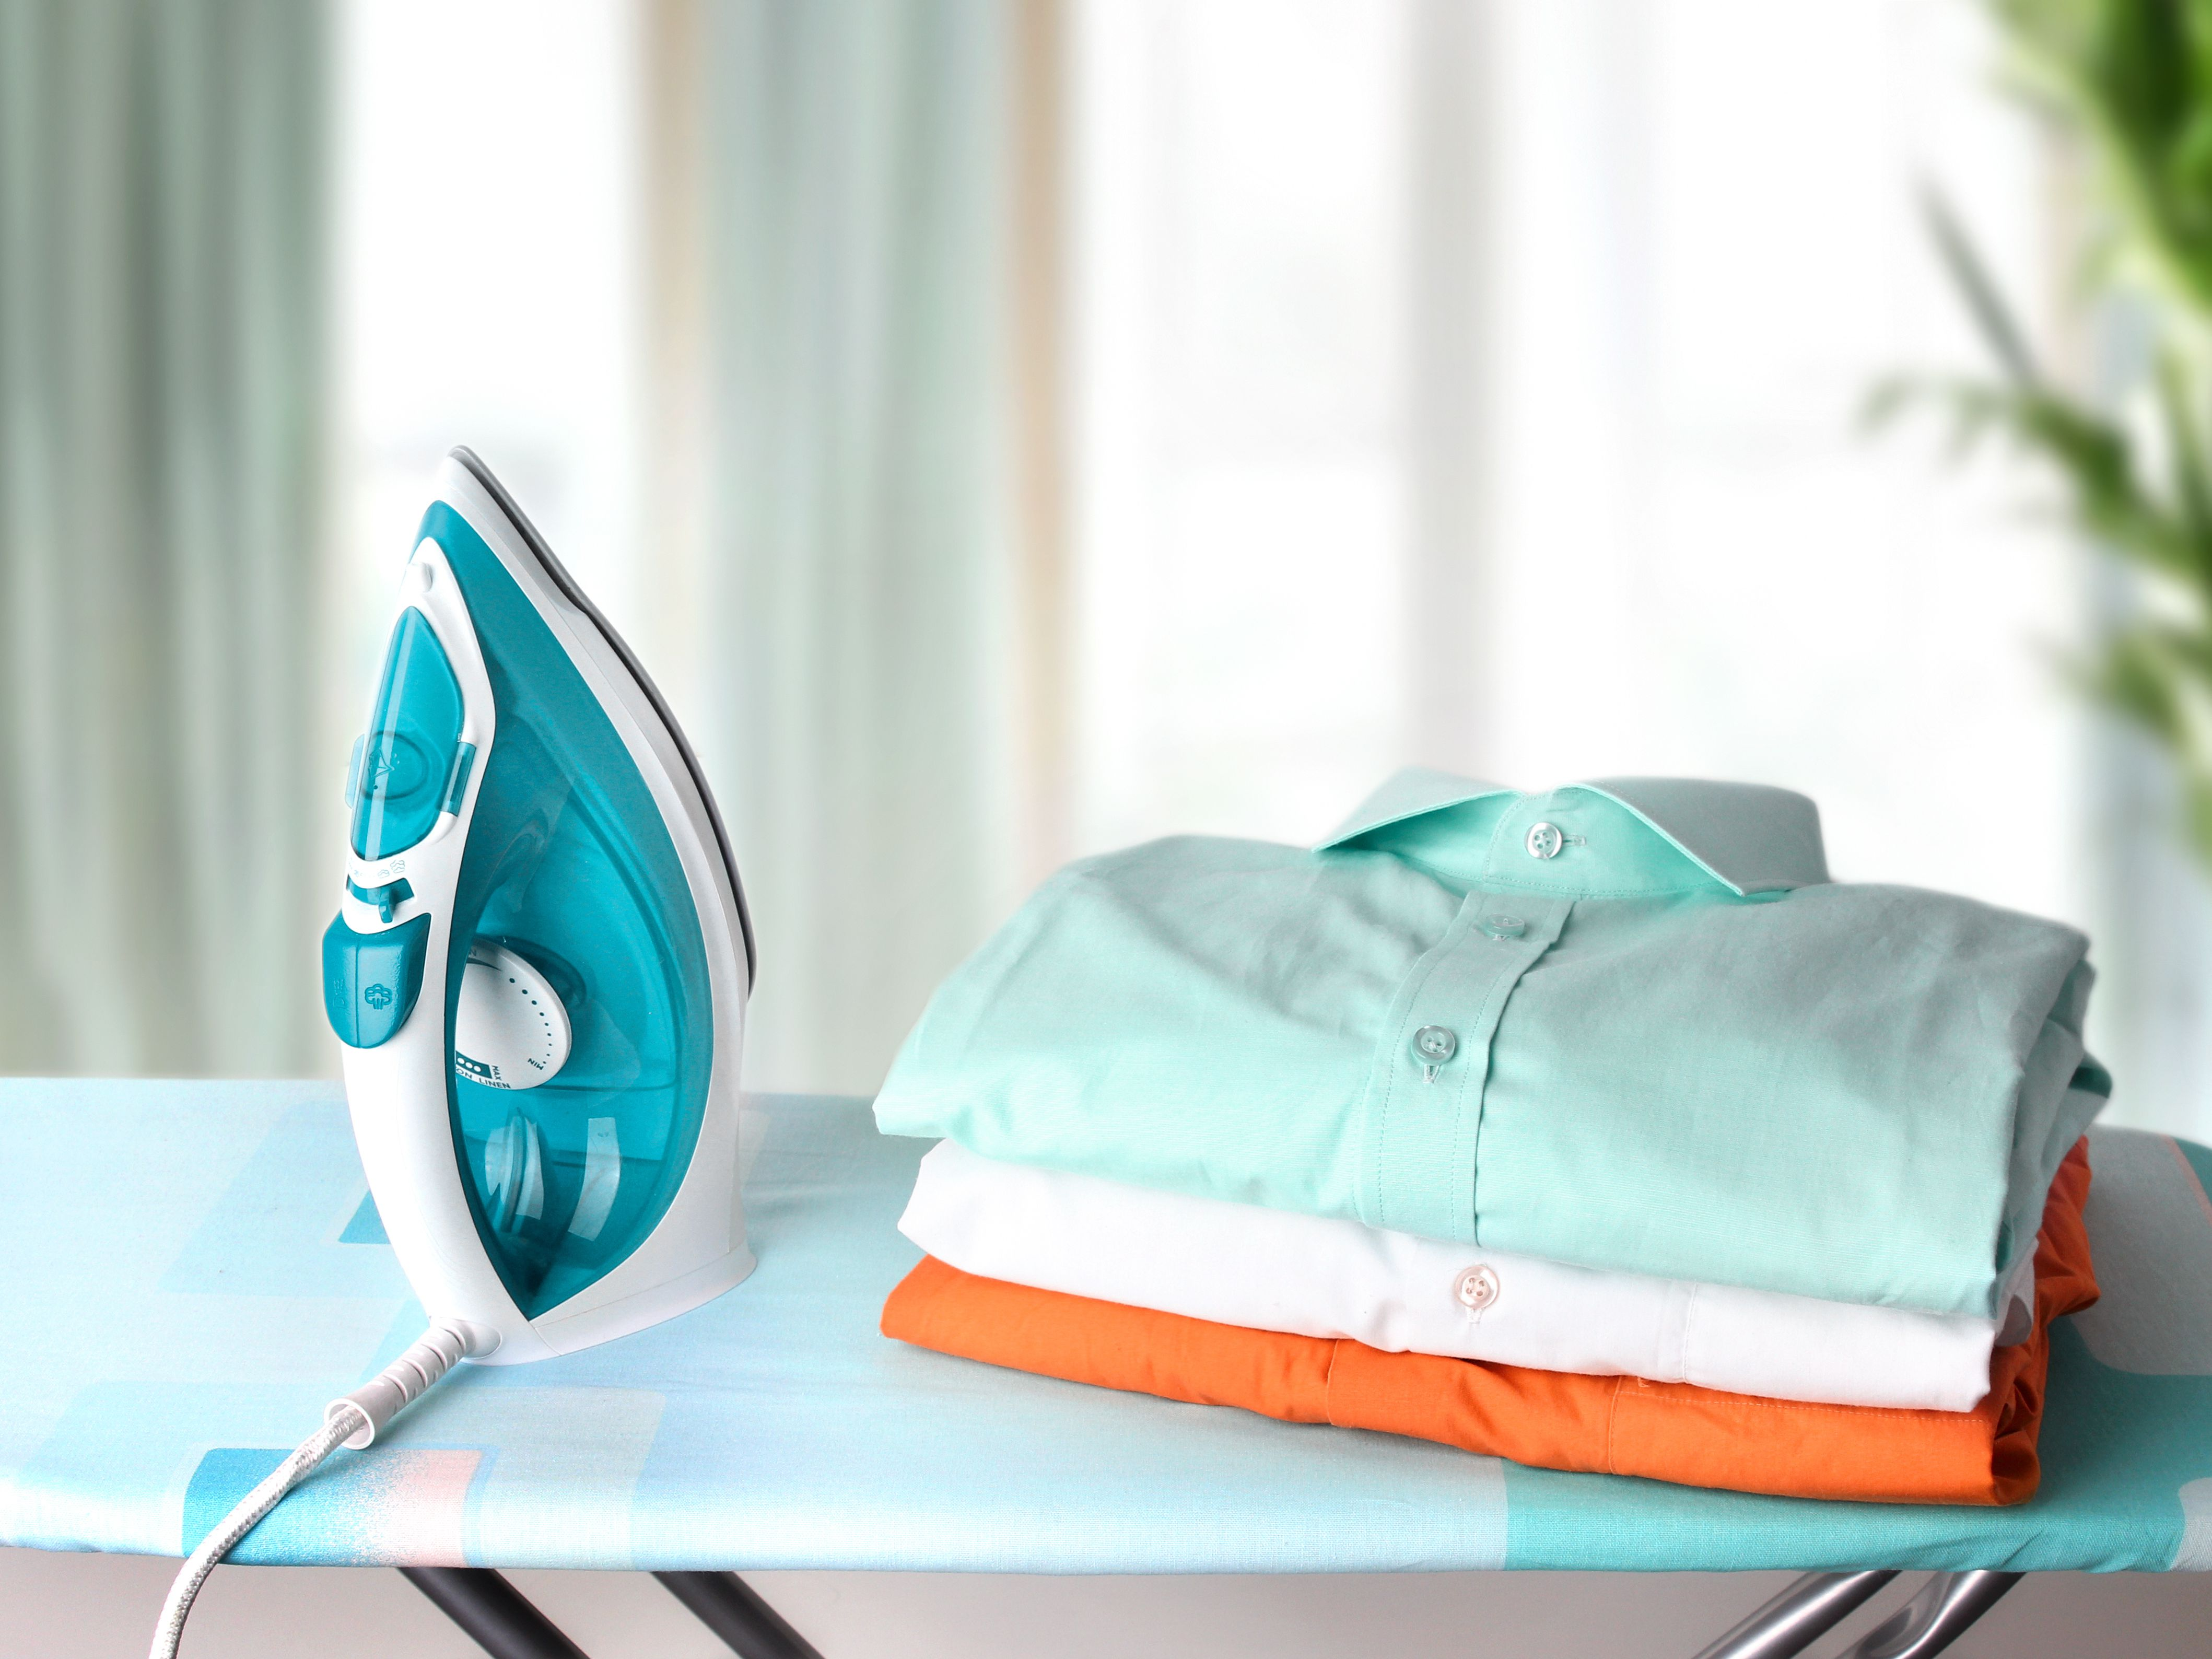 helpers available for ironing shirt in islamabad, rawalpindi and lahore through Mauqa Online app